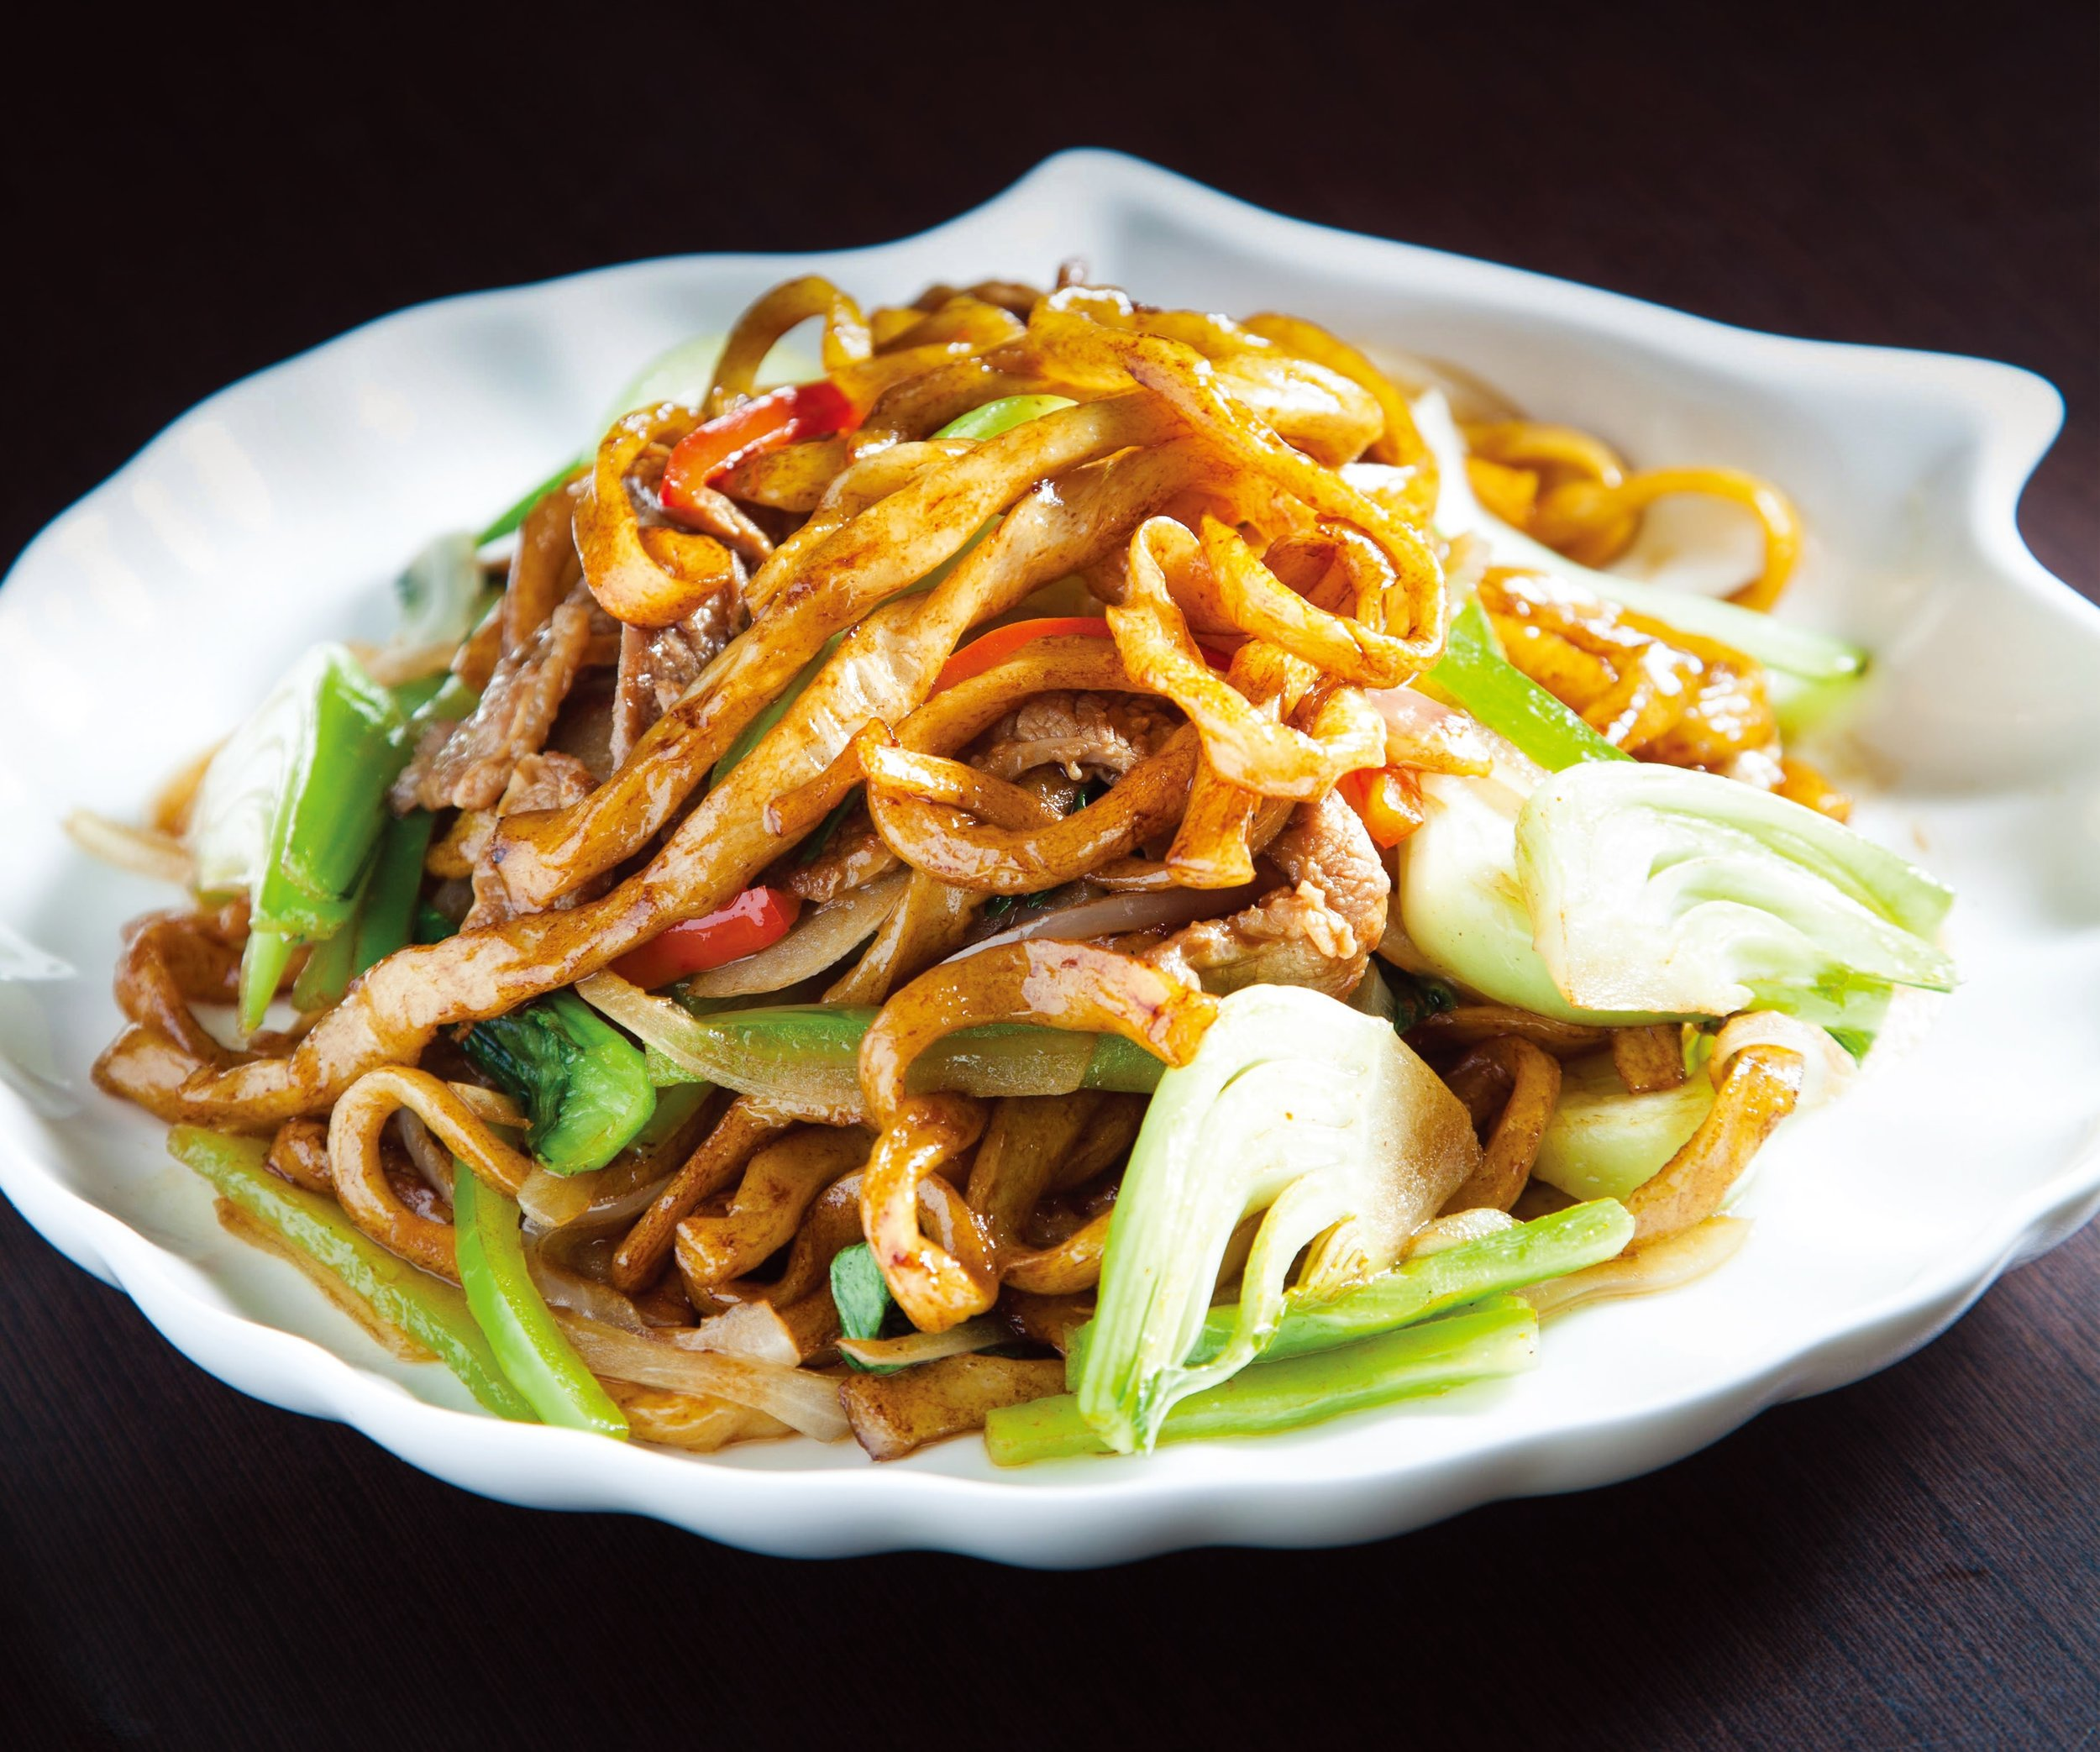 Stir fried hand made noodles with beef or lamb